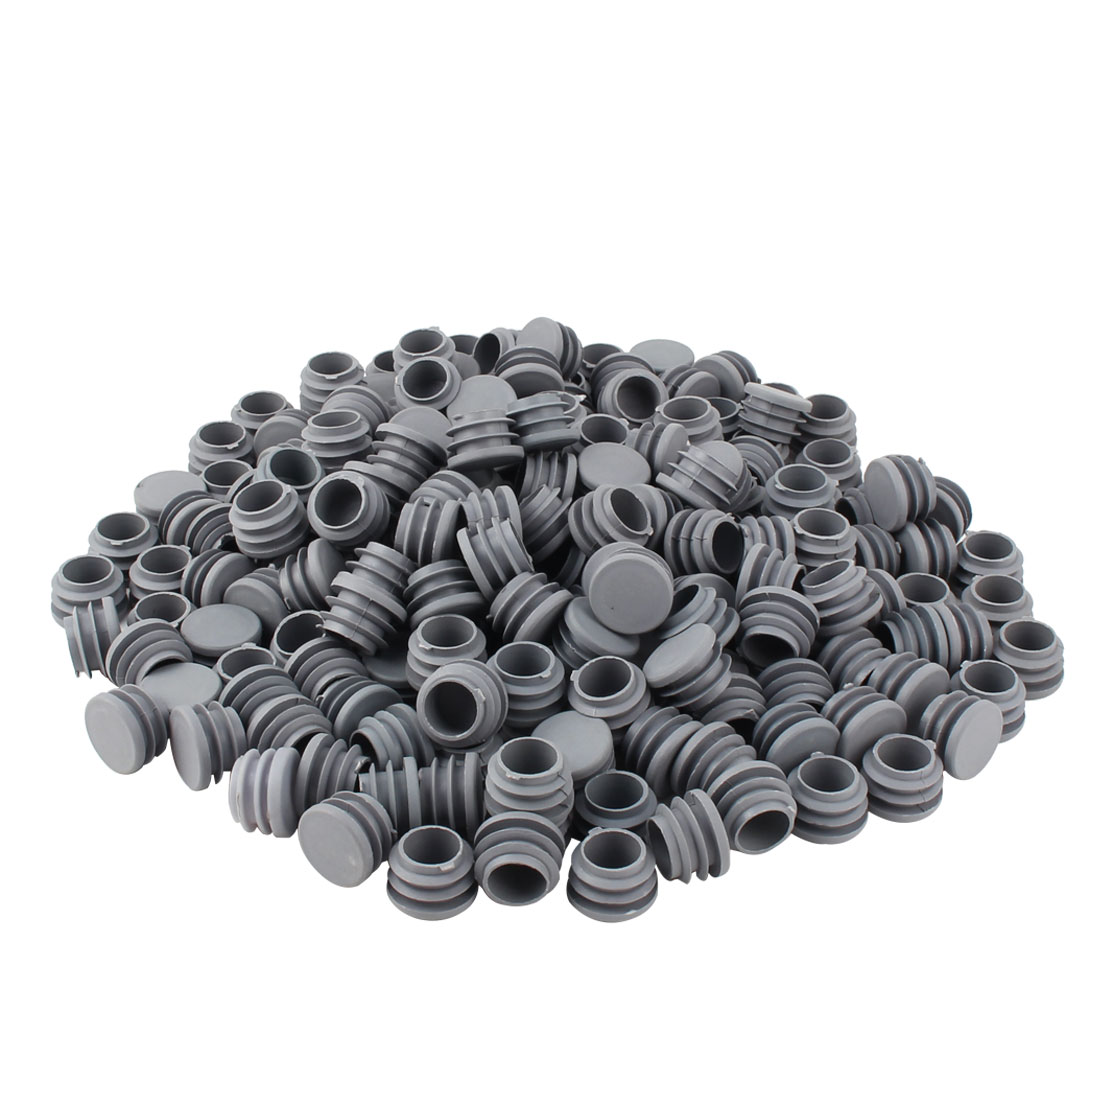 Furniture Table Chair Plastic Round Tube Pipe Insert Cap Cover Protector Gray 25mm Dia 200pcs